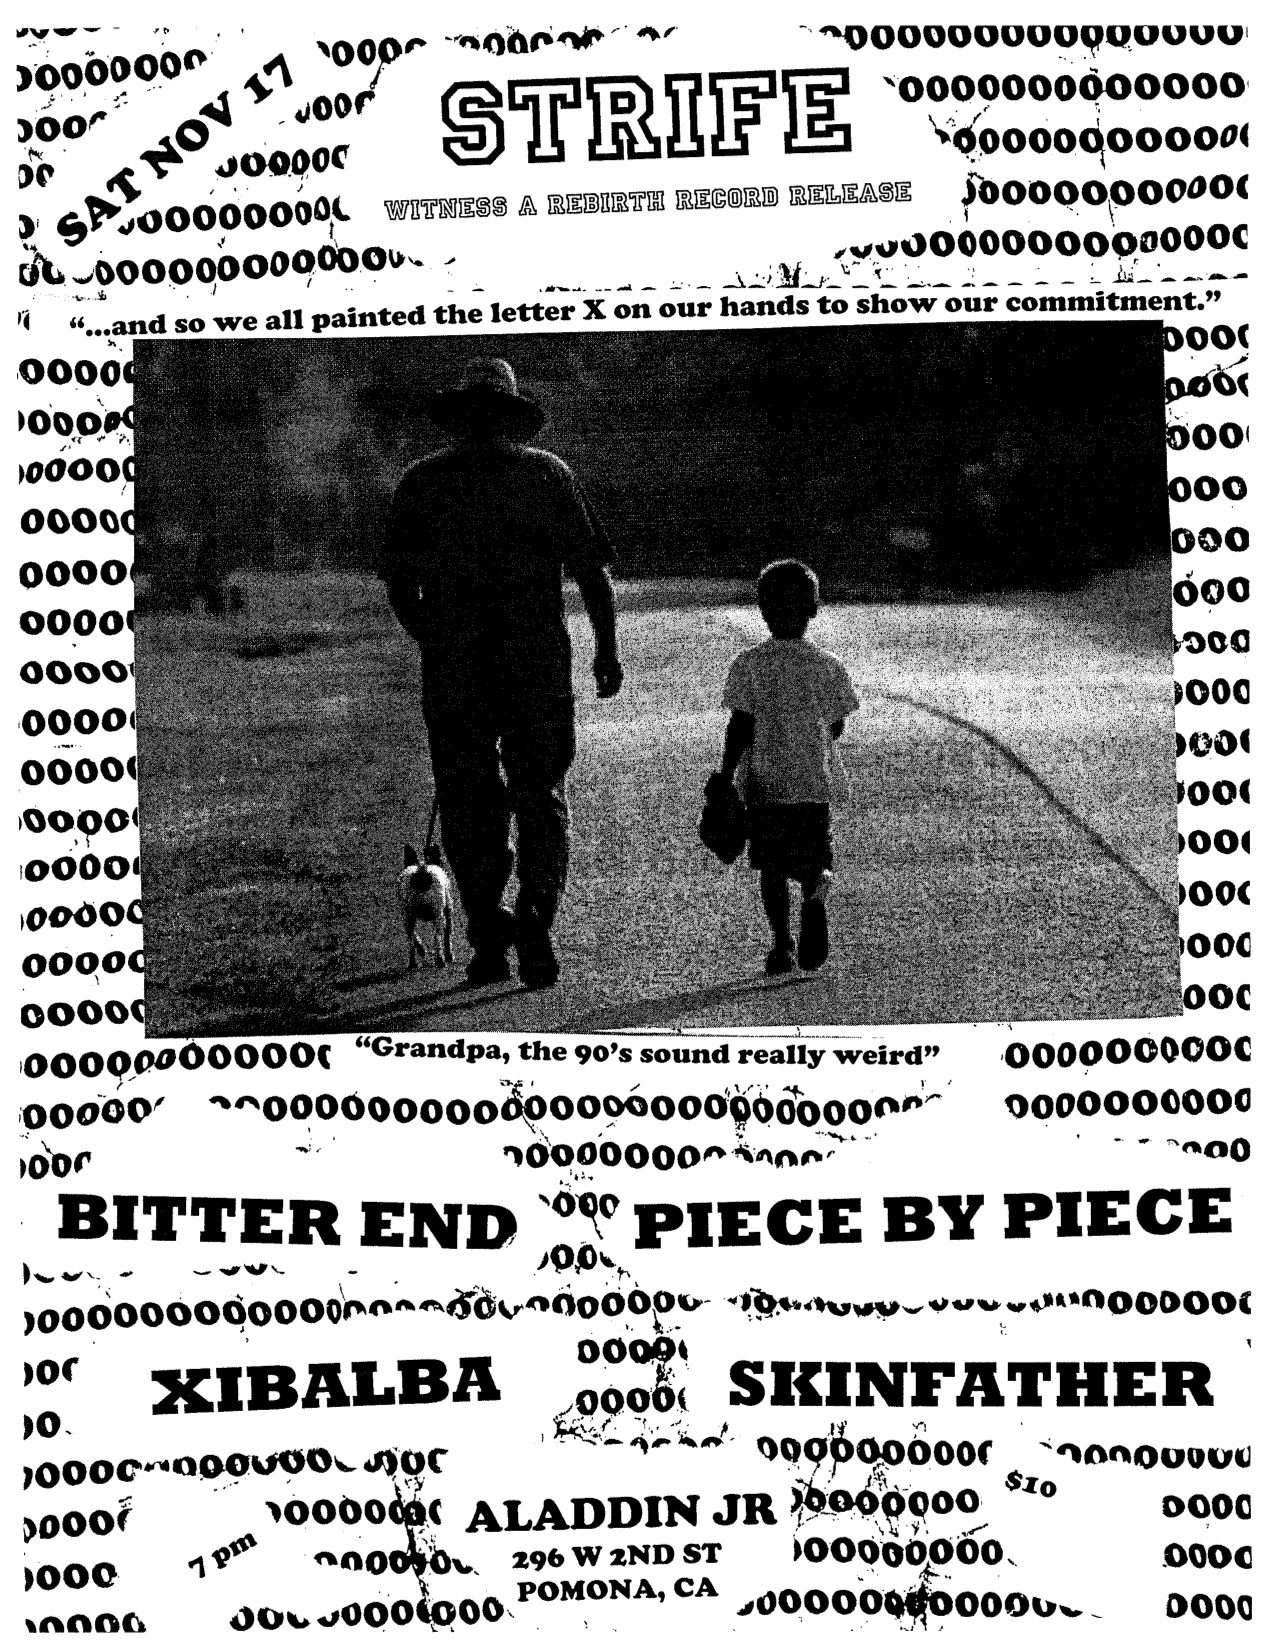 Strife-Bitter End-Piece By Piece-Xibalba-Skinfather @ Aladdin JR Pomona CA 11-17-12